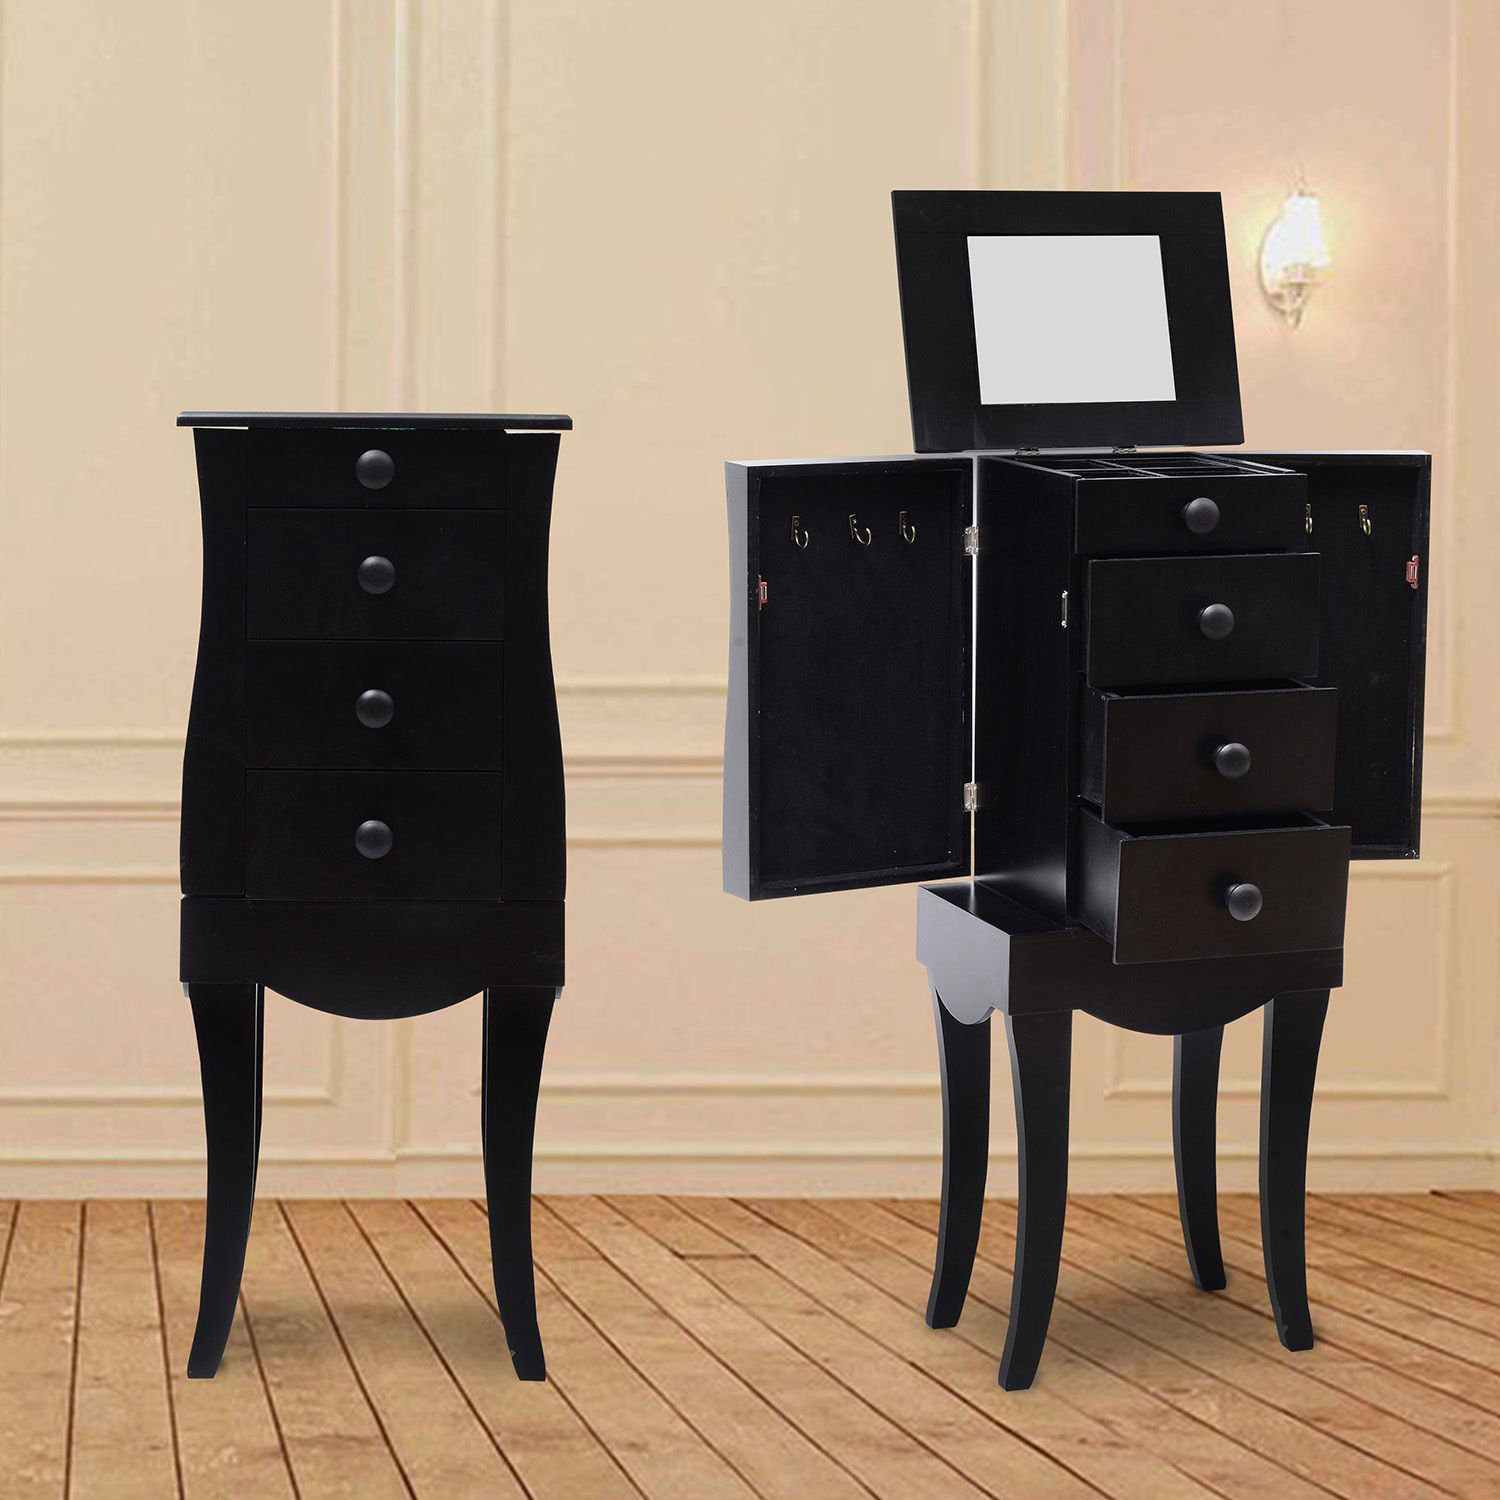 Elegant Curved Floor Standing Black Jewelry Armoire